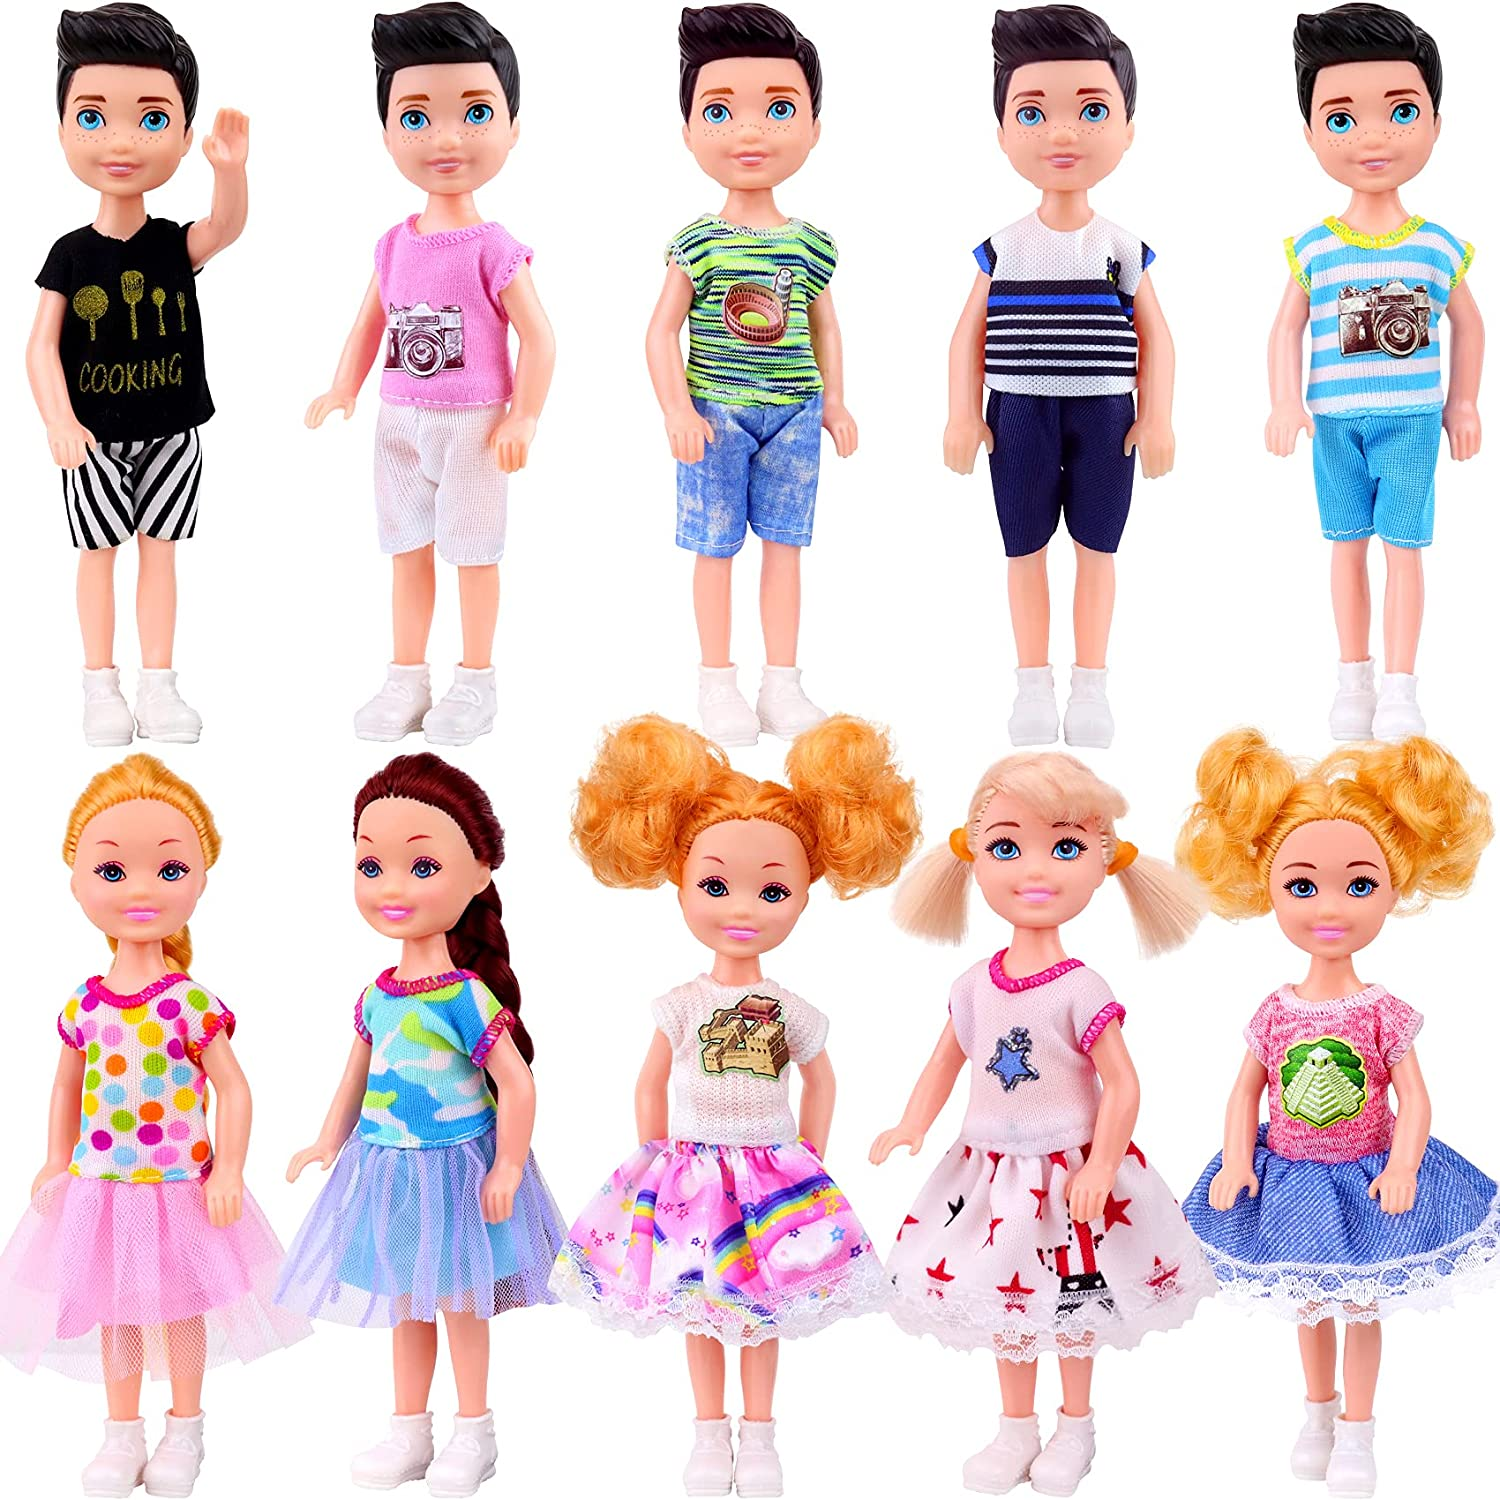 ZITA ELEMENT 10 Pcs 5 Inch with Mini excellence Latest item Boy Girl and Doll